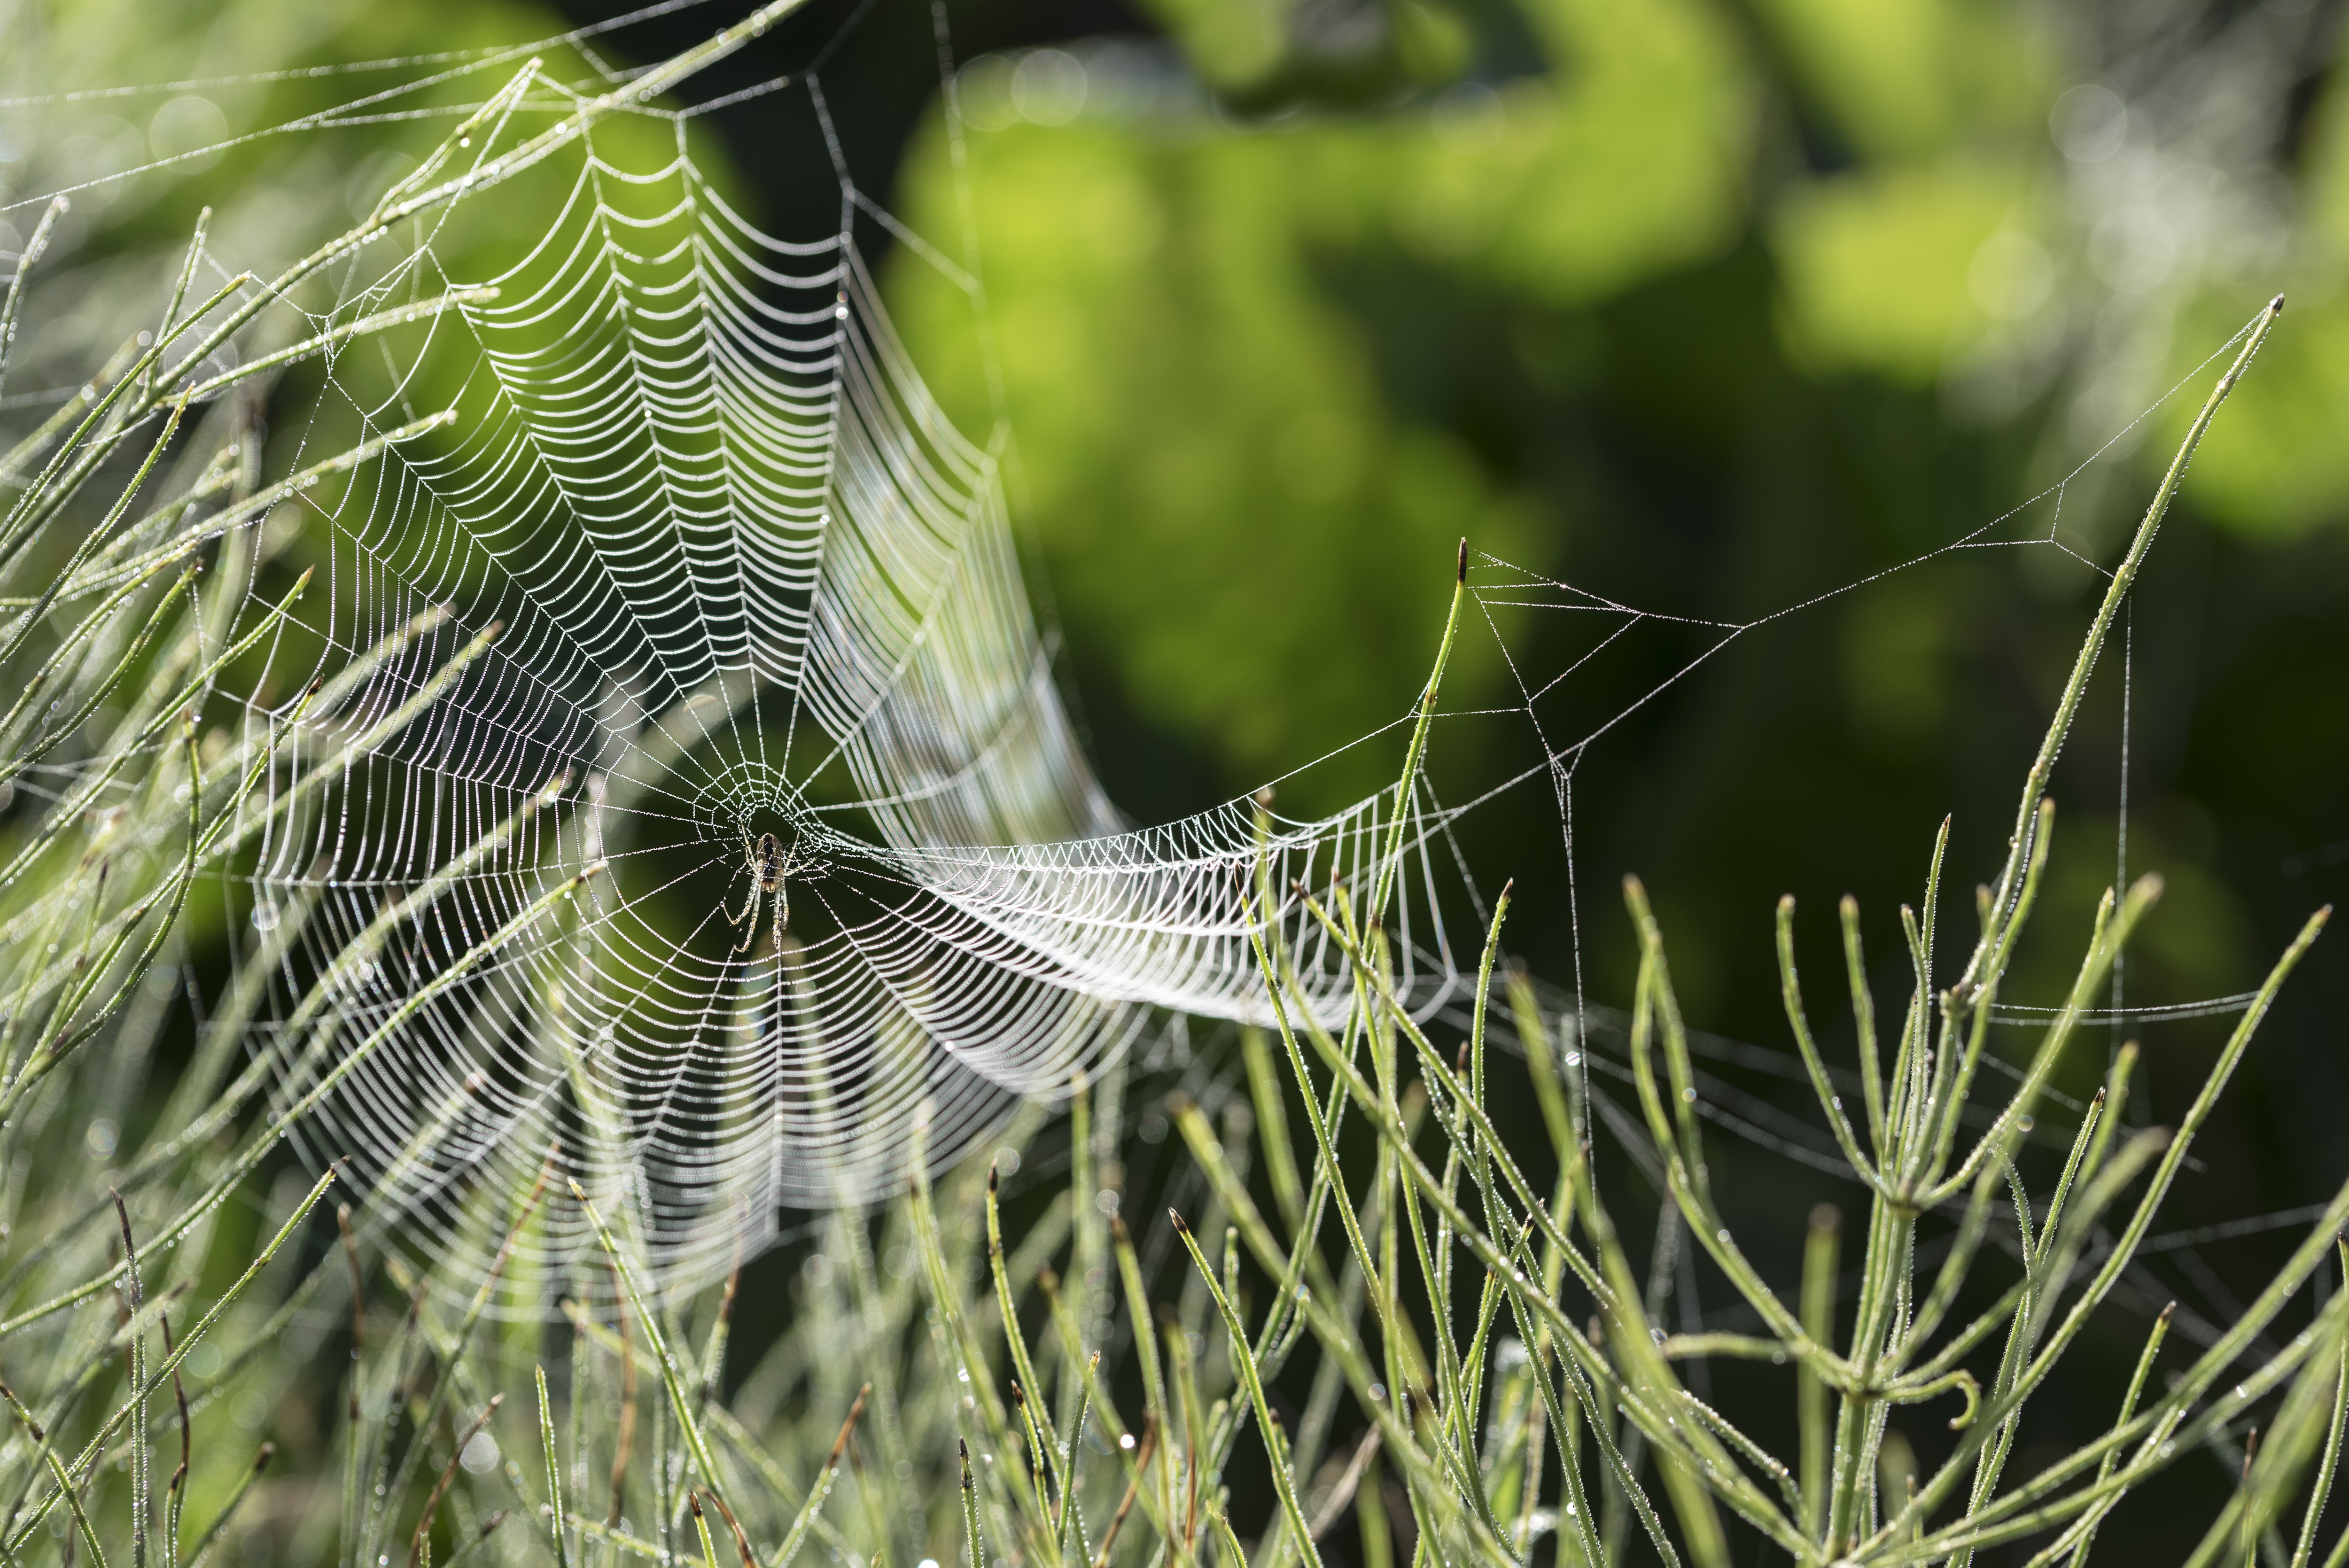 What Can You Spray in Your Yard to Get Rid of Spiders